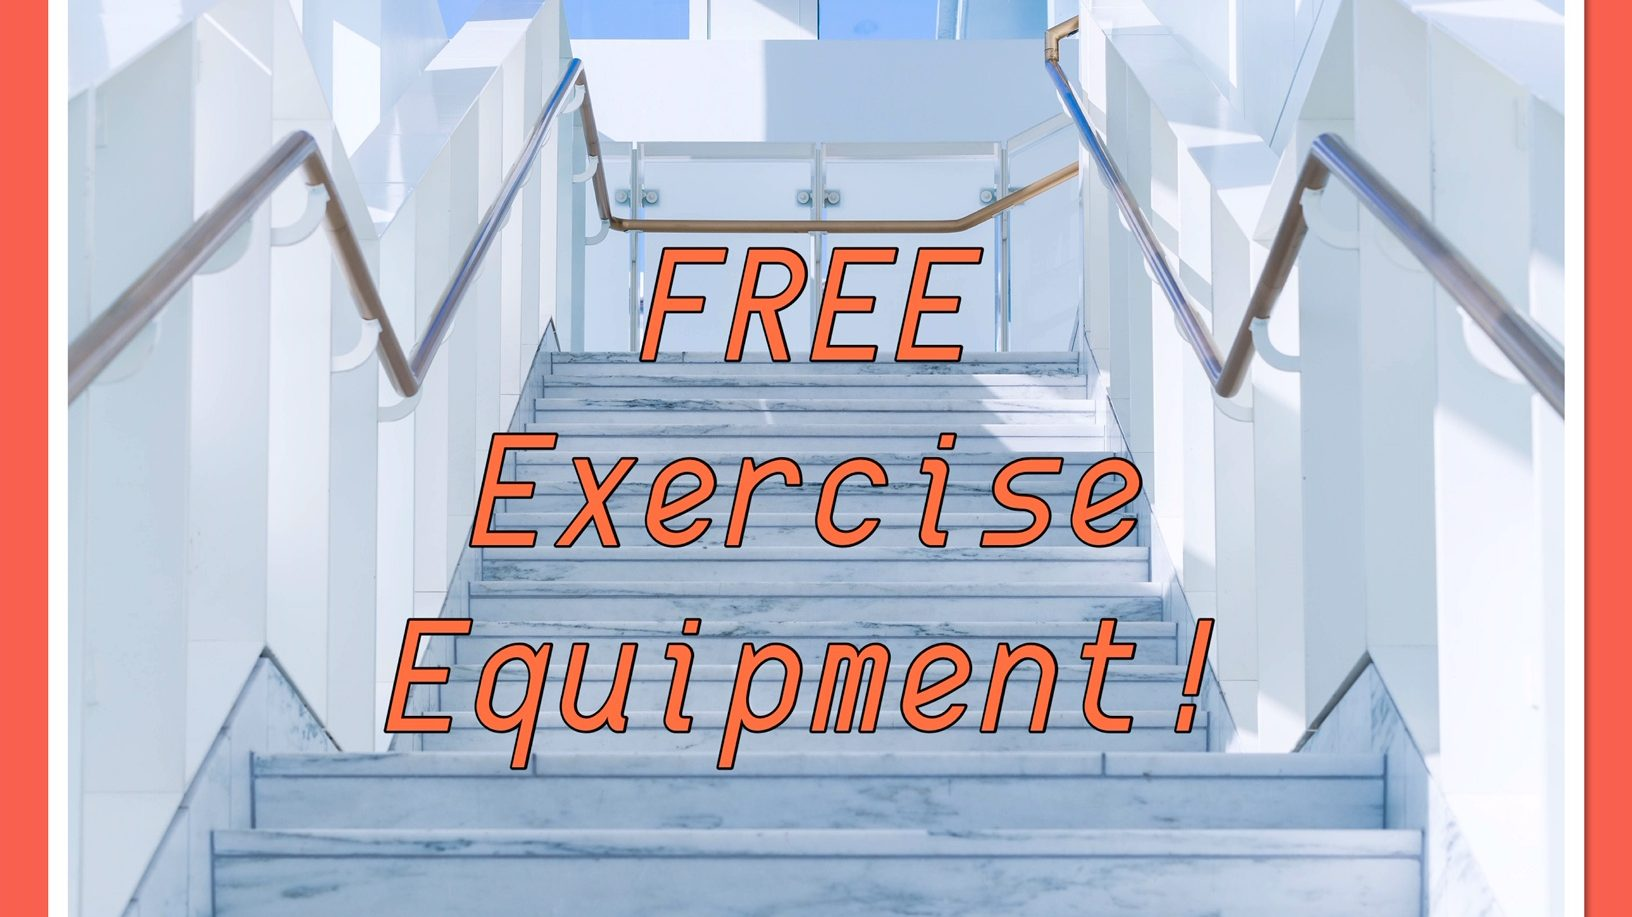 Fitting in Fitness: Use the Free Exercise Equipment!